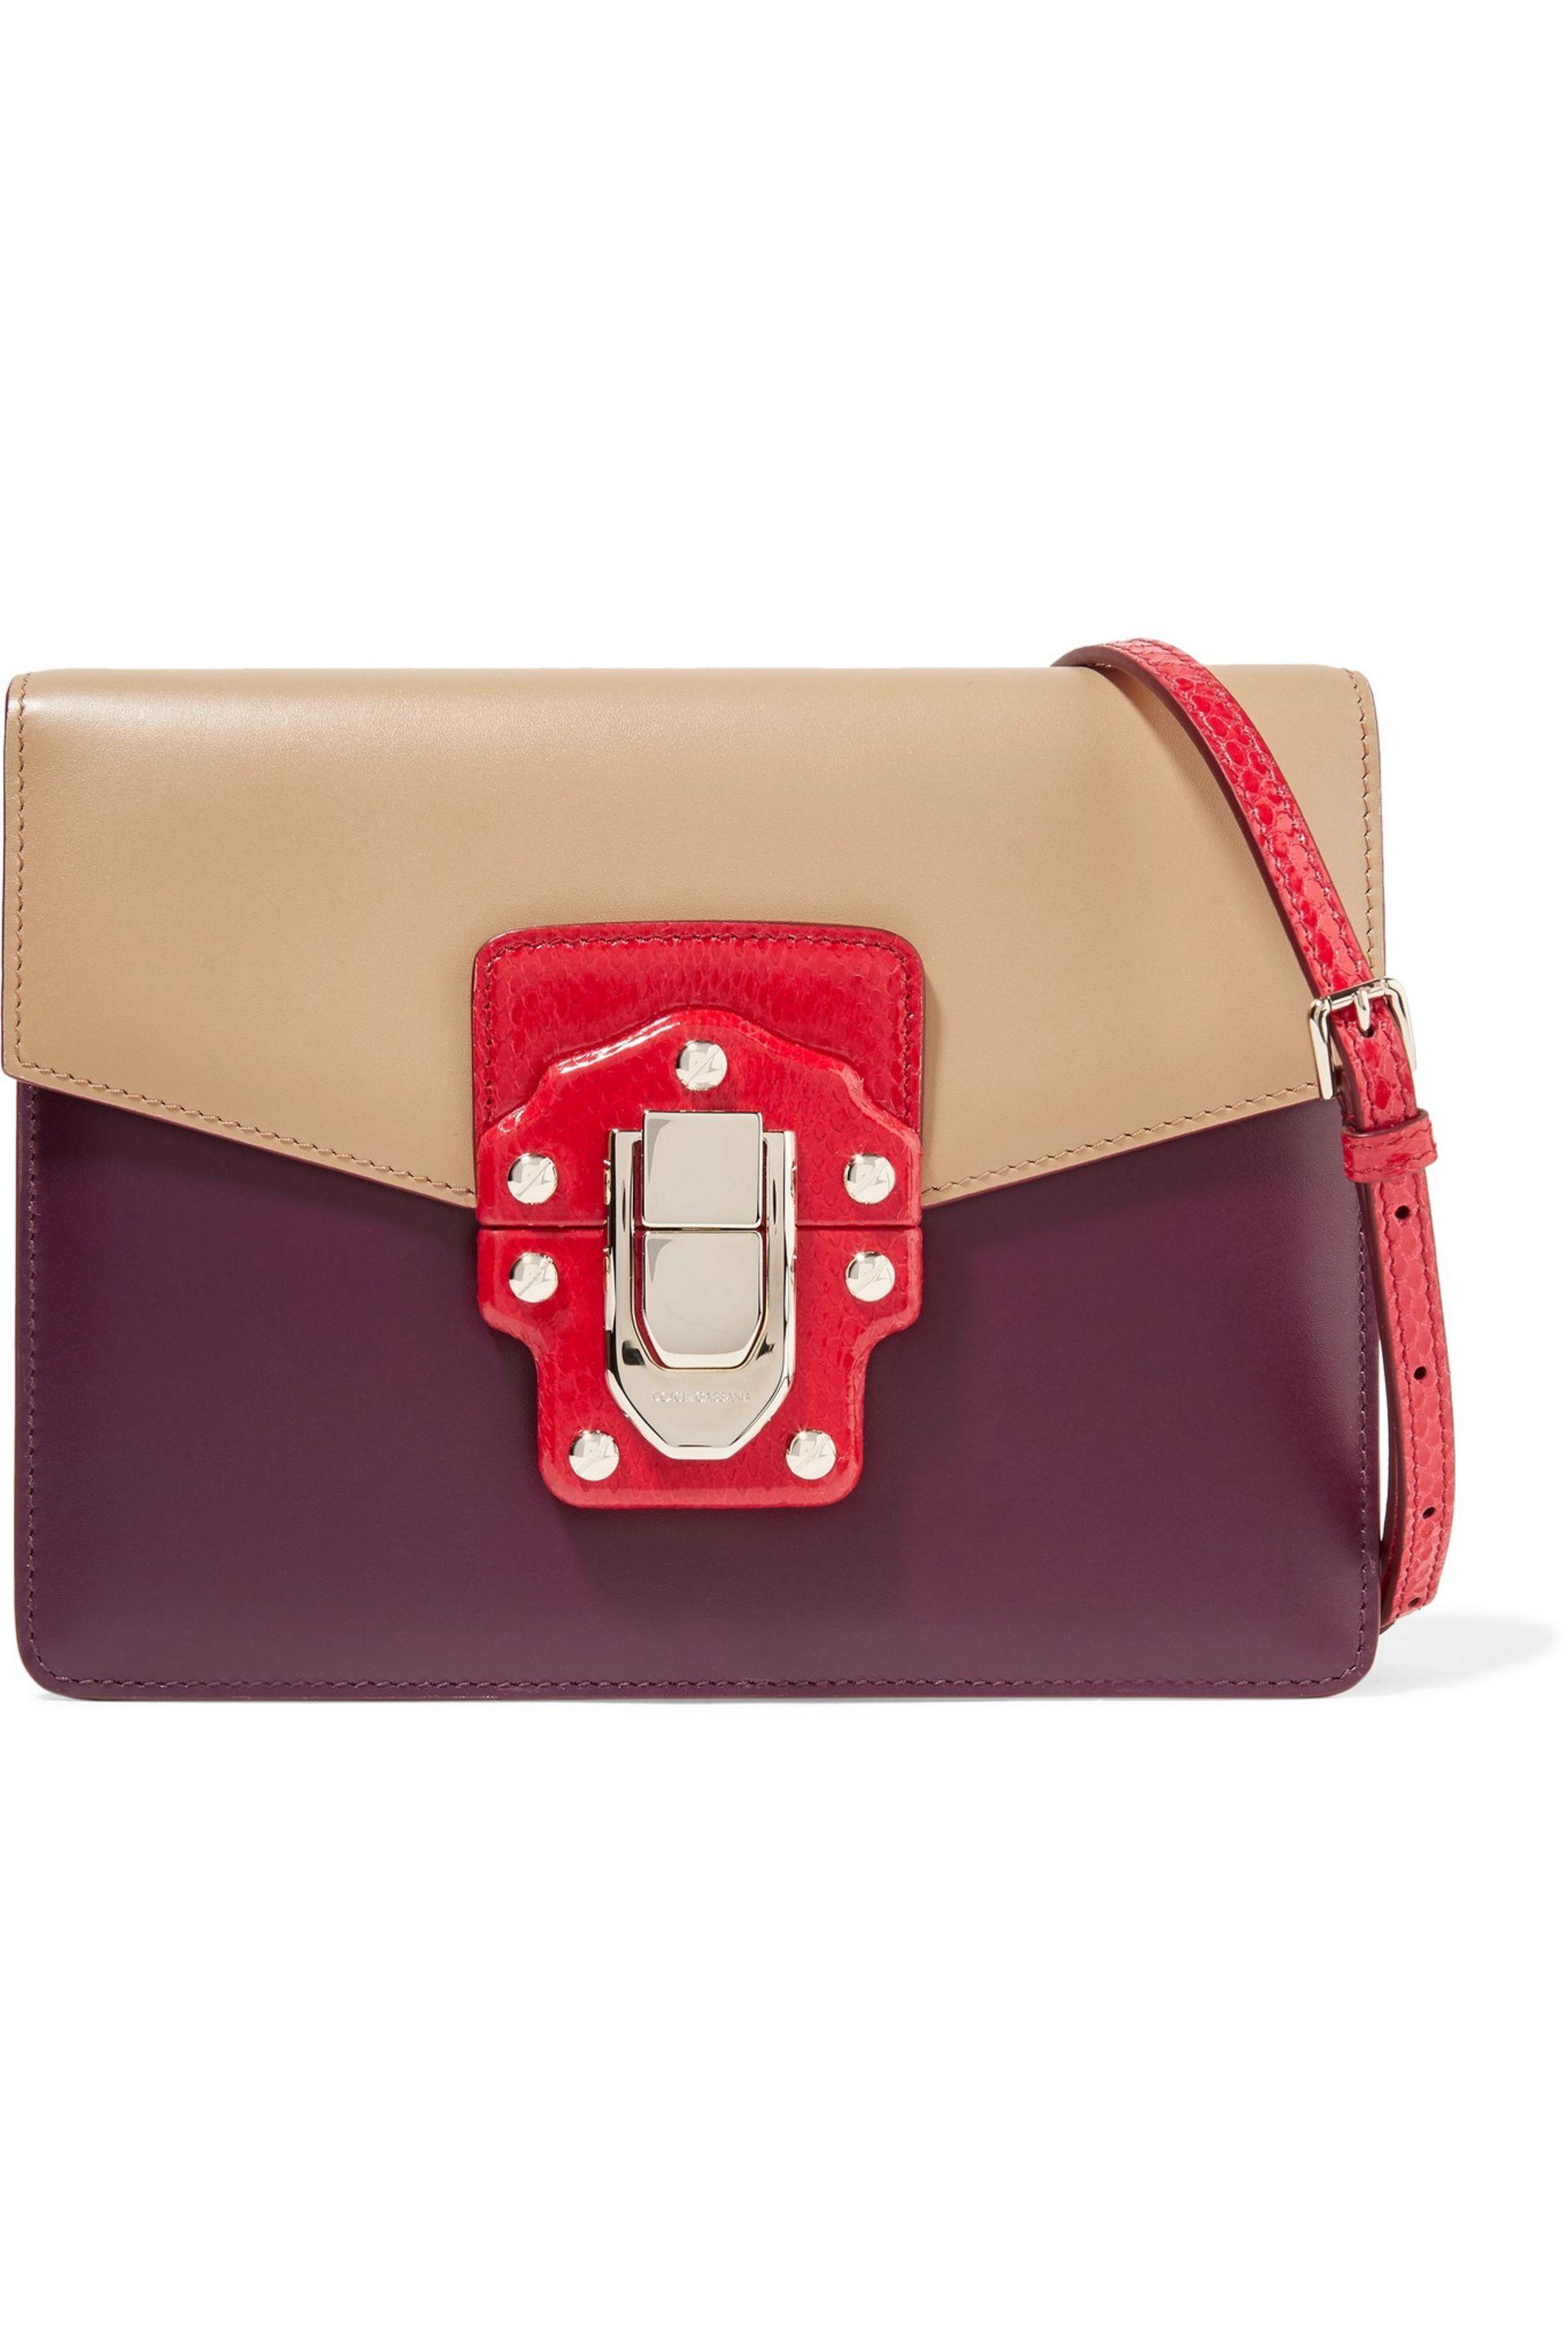 Dolce   Gabbana - Multicolor Woman Lucia Color-block Ayers And Leather  Shoulder Bag Sand. View fullscreen dcfd95962591a